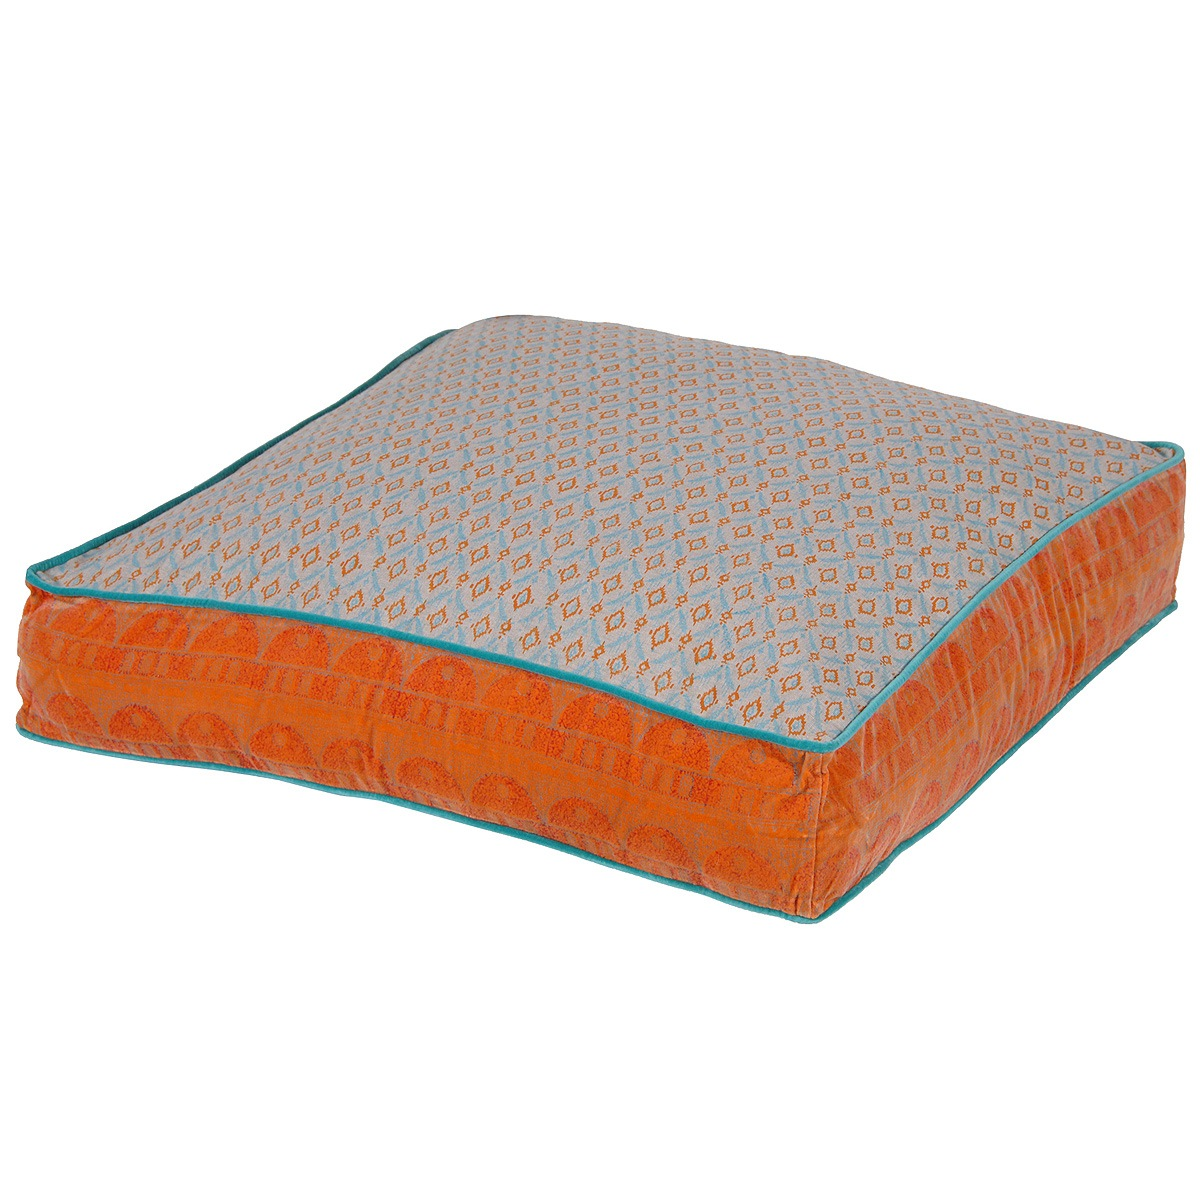 Floor Cushions Or Pillows : Large Festival Floor Cushion in Orange, French Bedroom Company